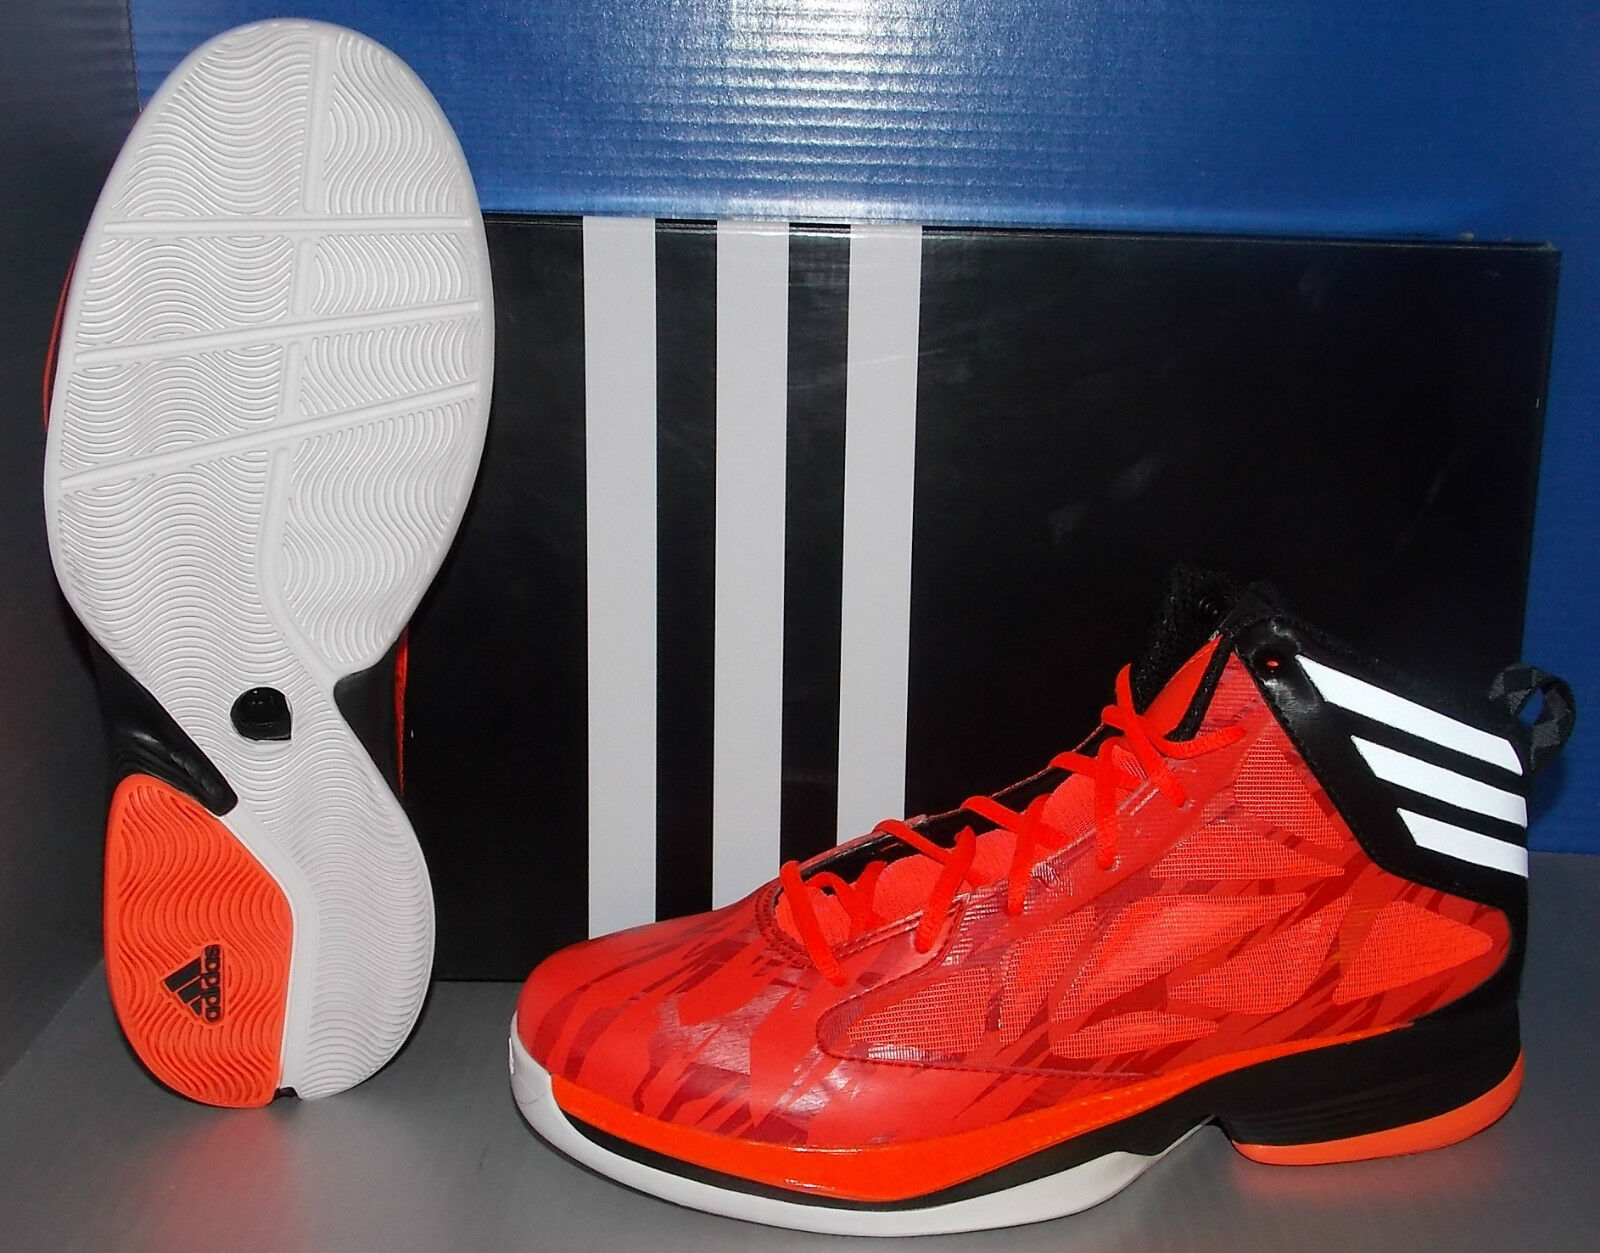 MENS ADIDAS CRAZY FAST in colors INFRA RED WHITE / RUNNING WHITE RED / BLACK SIZE 11.5 5478cb